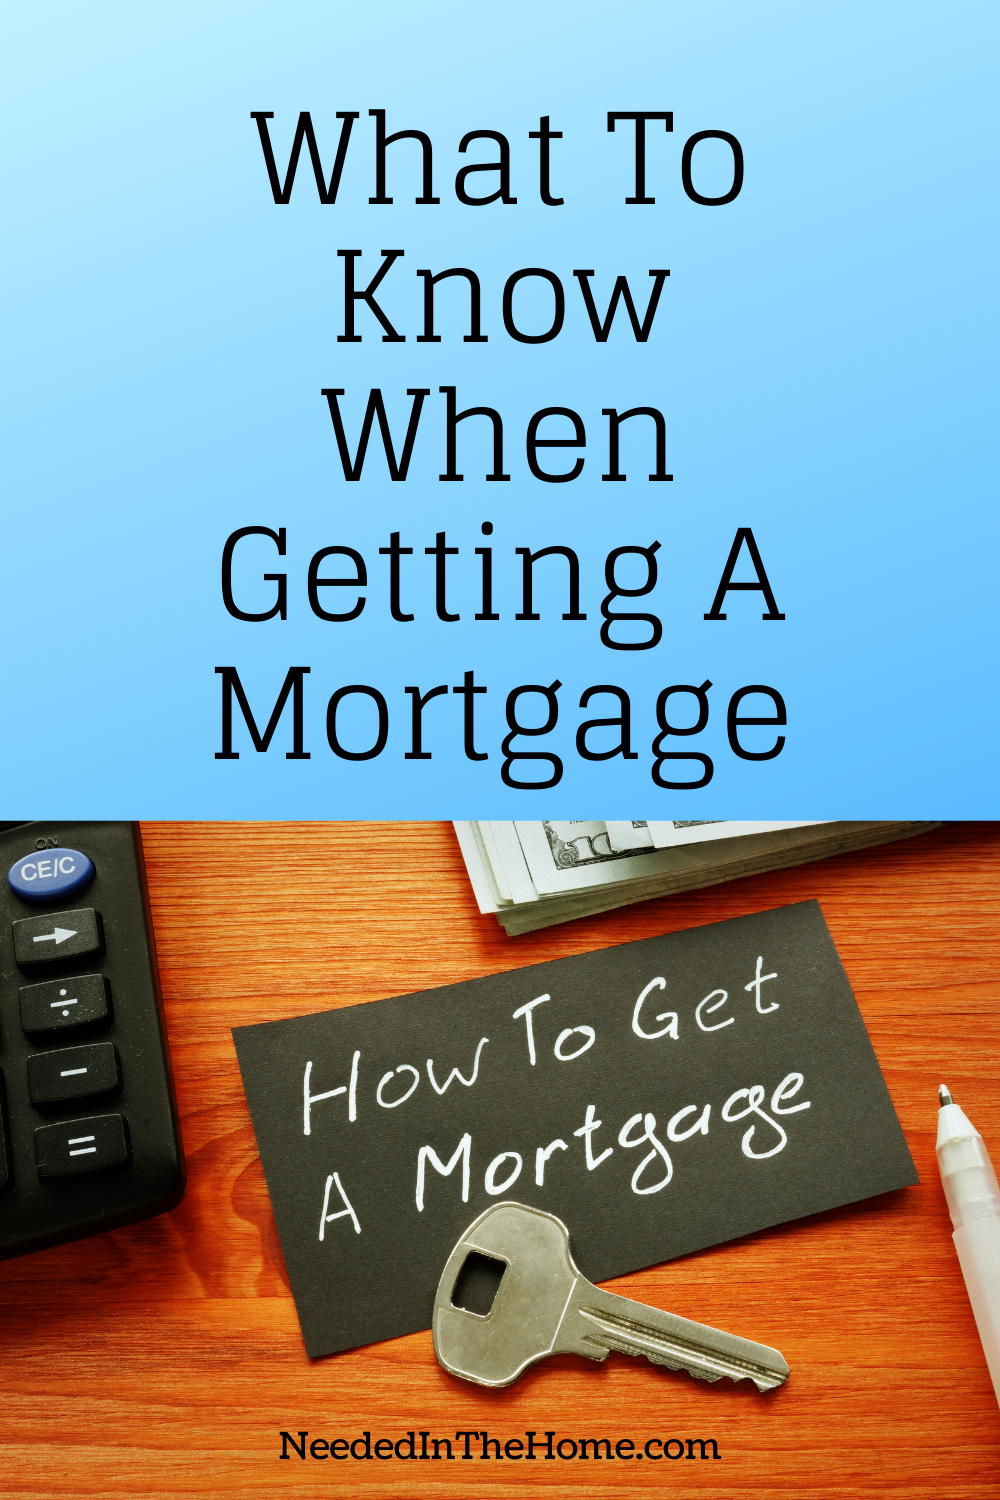 pinterest-pin-description what to know when getting a mortgage how to get a mortgage key calculator money pen neededinthehome